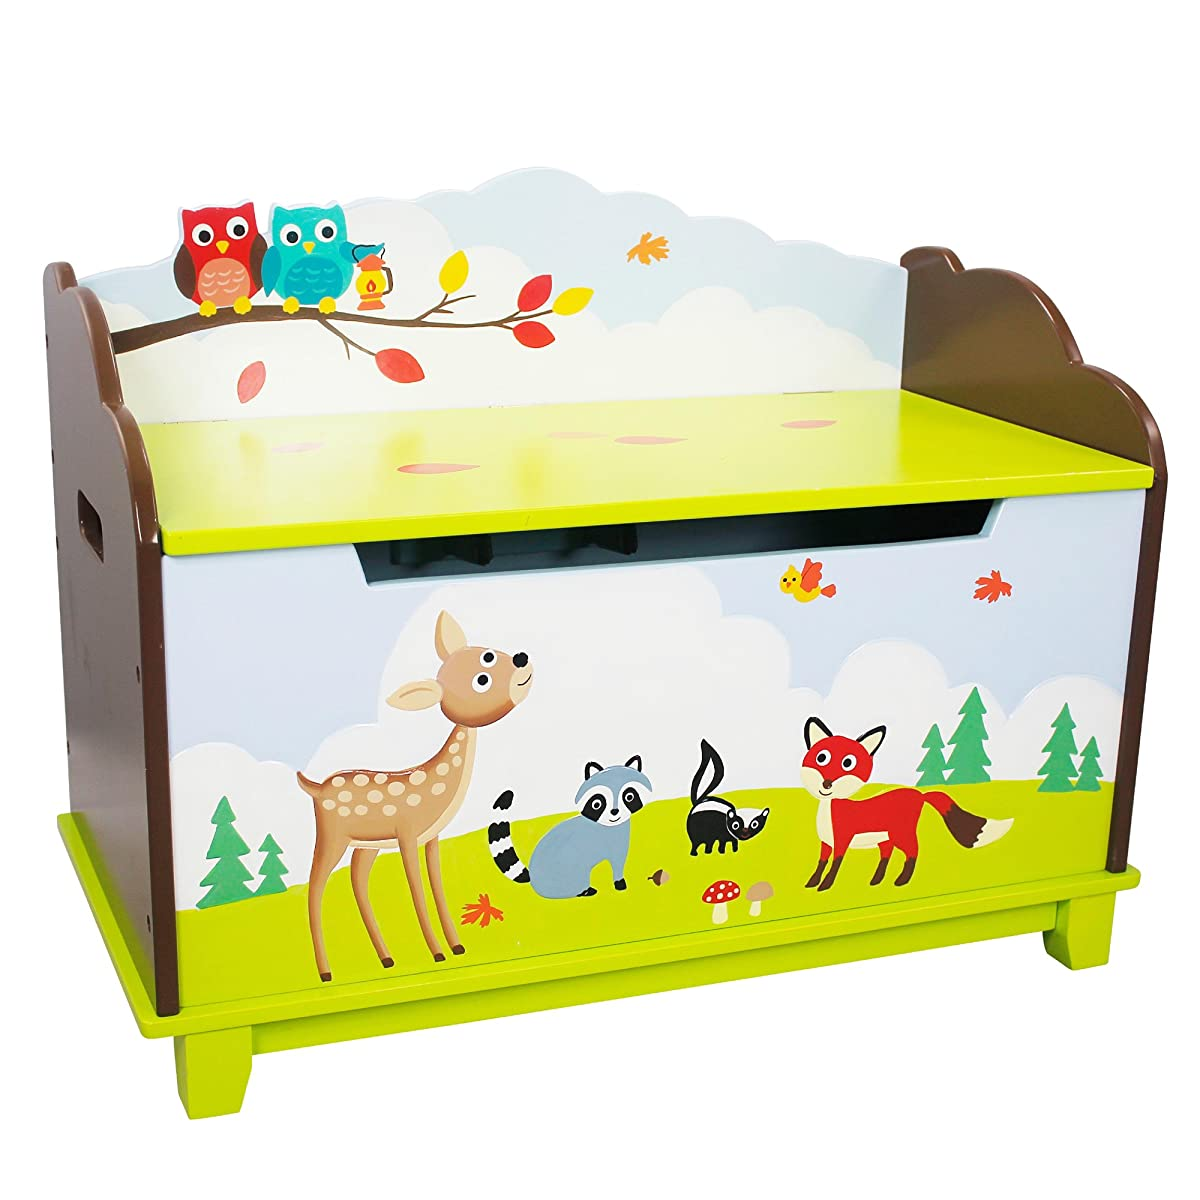 Enchanted Woodland Thematic Kids Wooden Toy Chest with Safety Hinges | Imagination Inspiring Hand Crafted